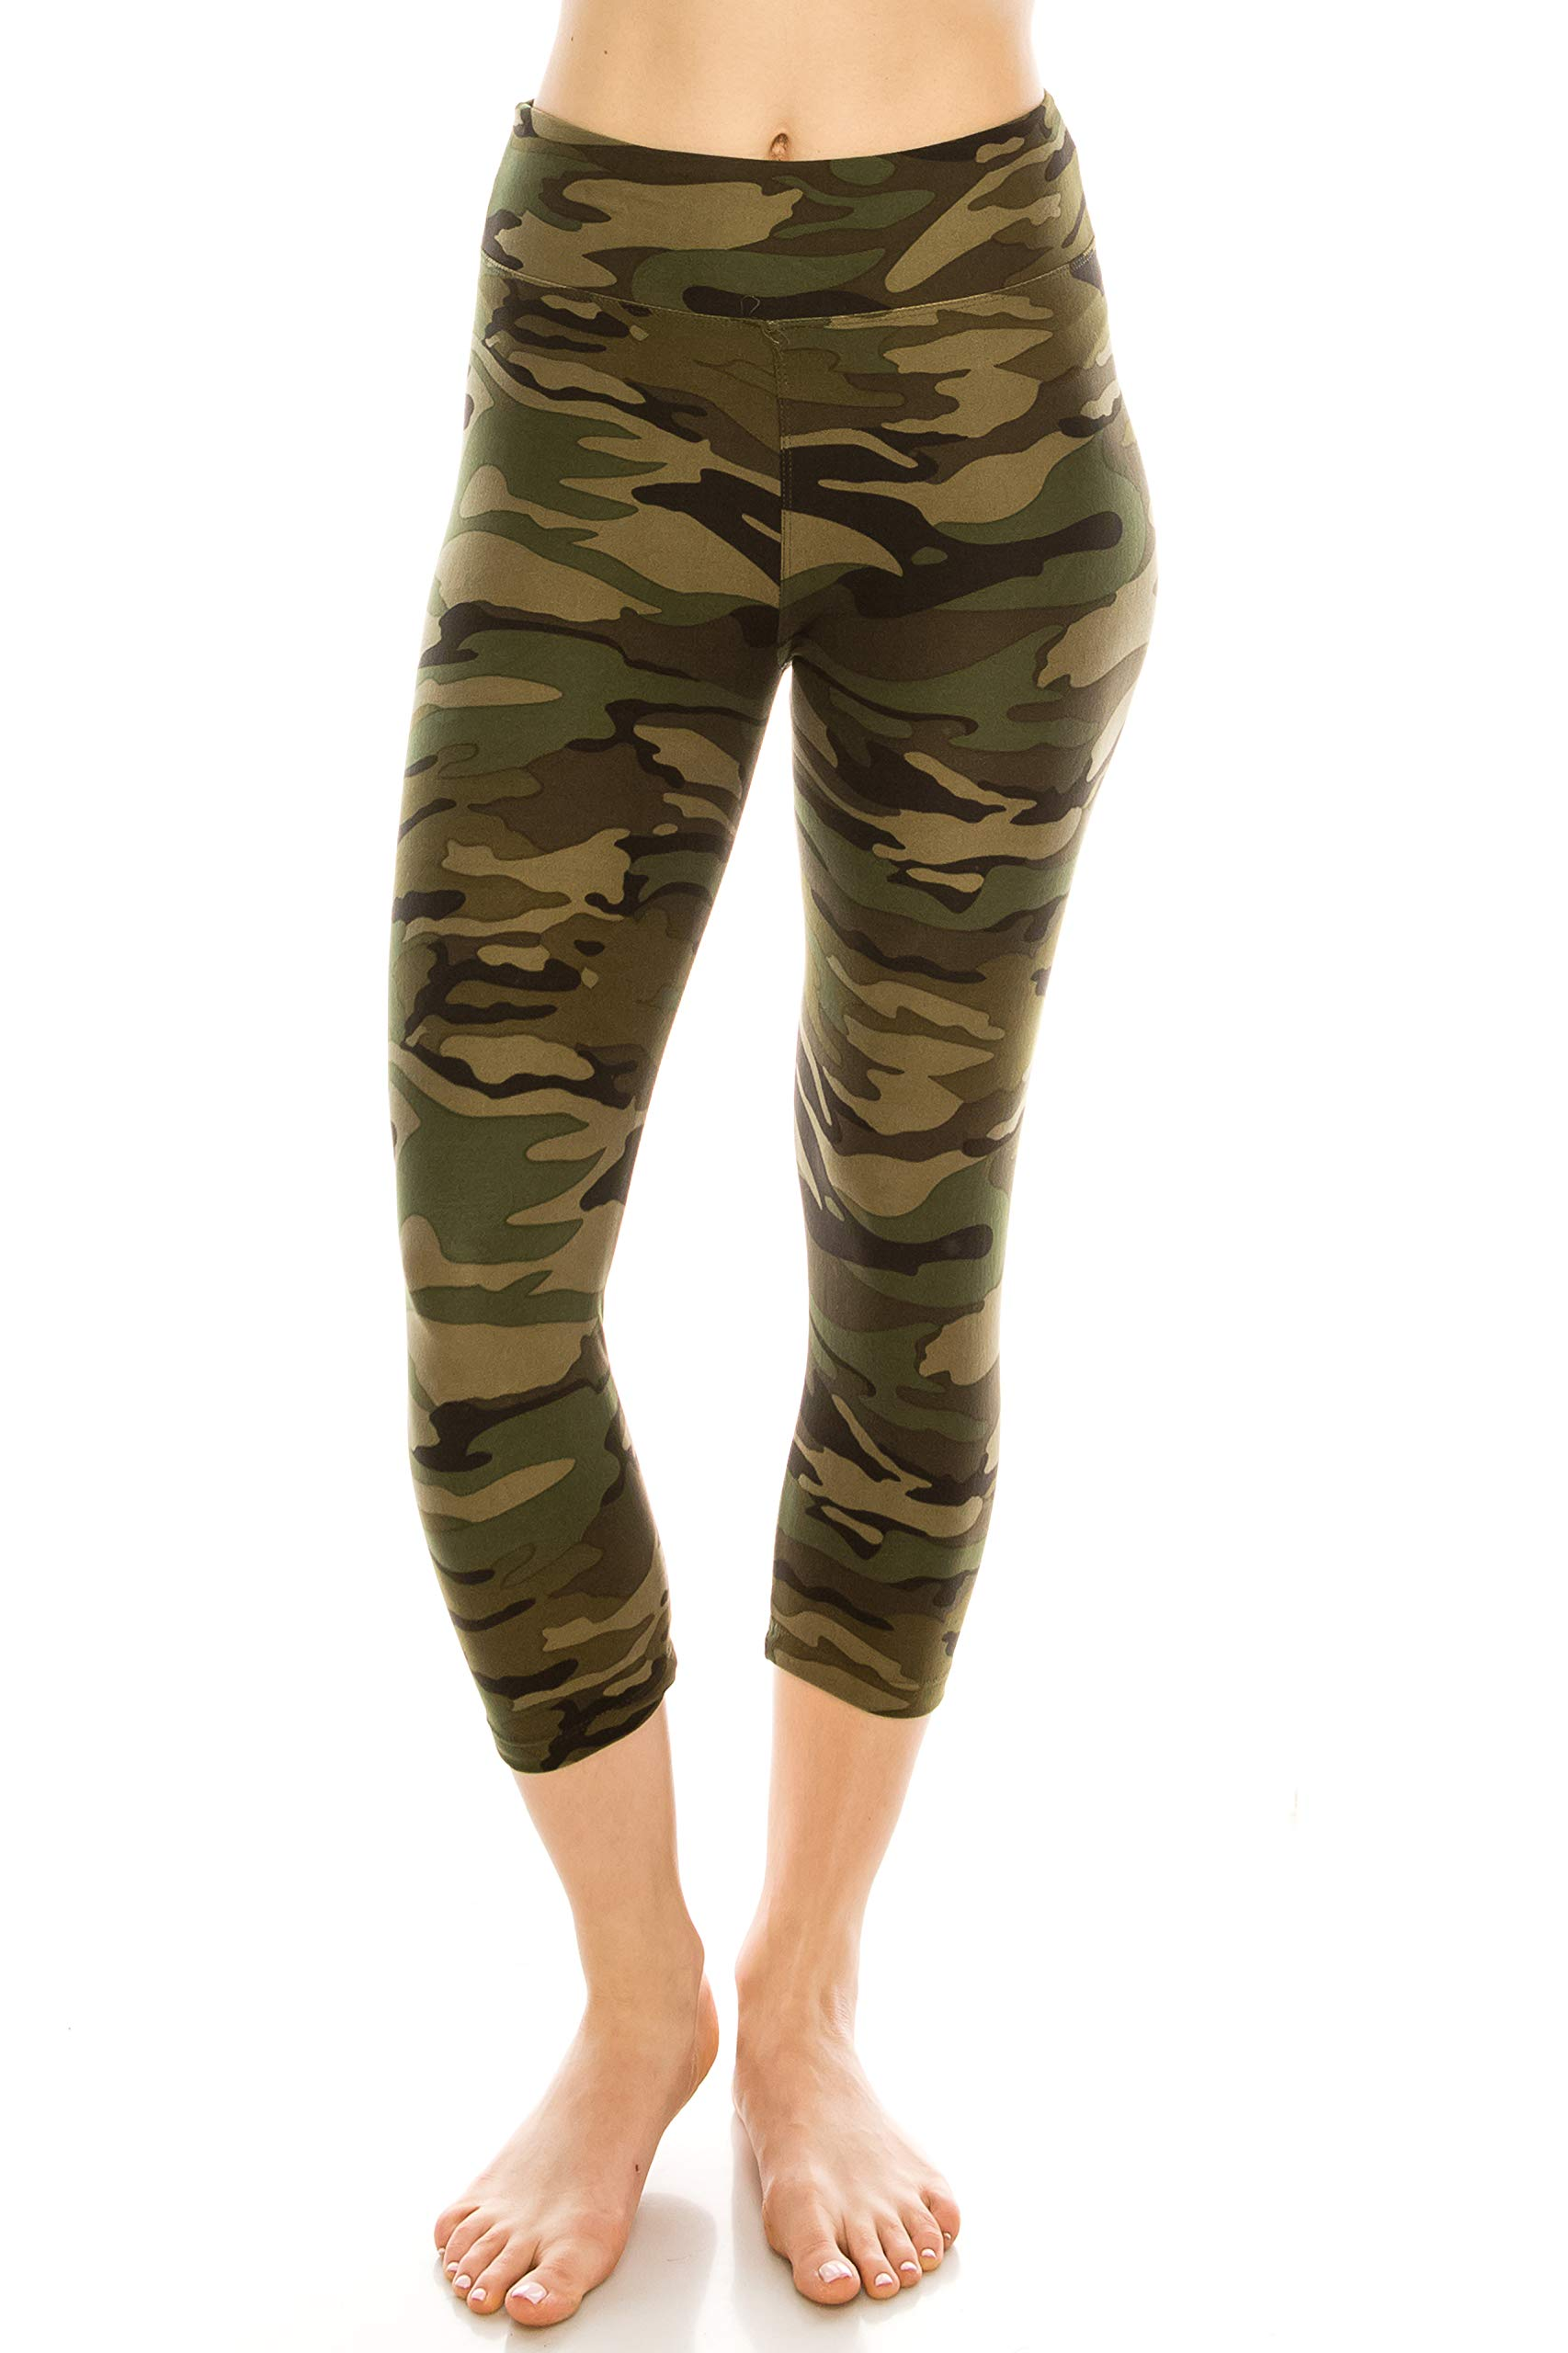 ALWAYS Women High Waisted Capri Leggings - Premium Buttery Soft Stretch Solid Basic Yoga Workout Pants